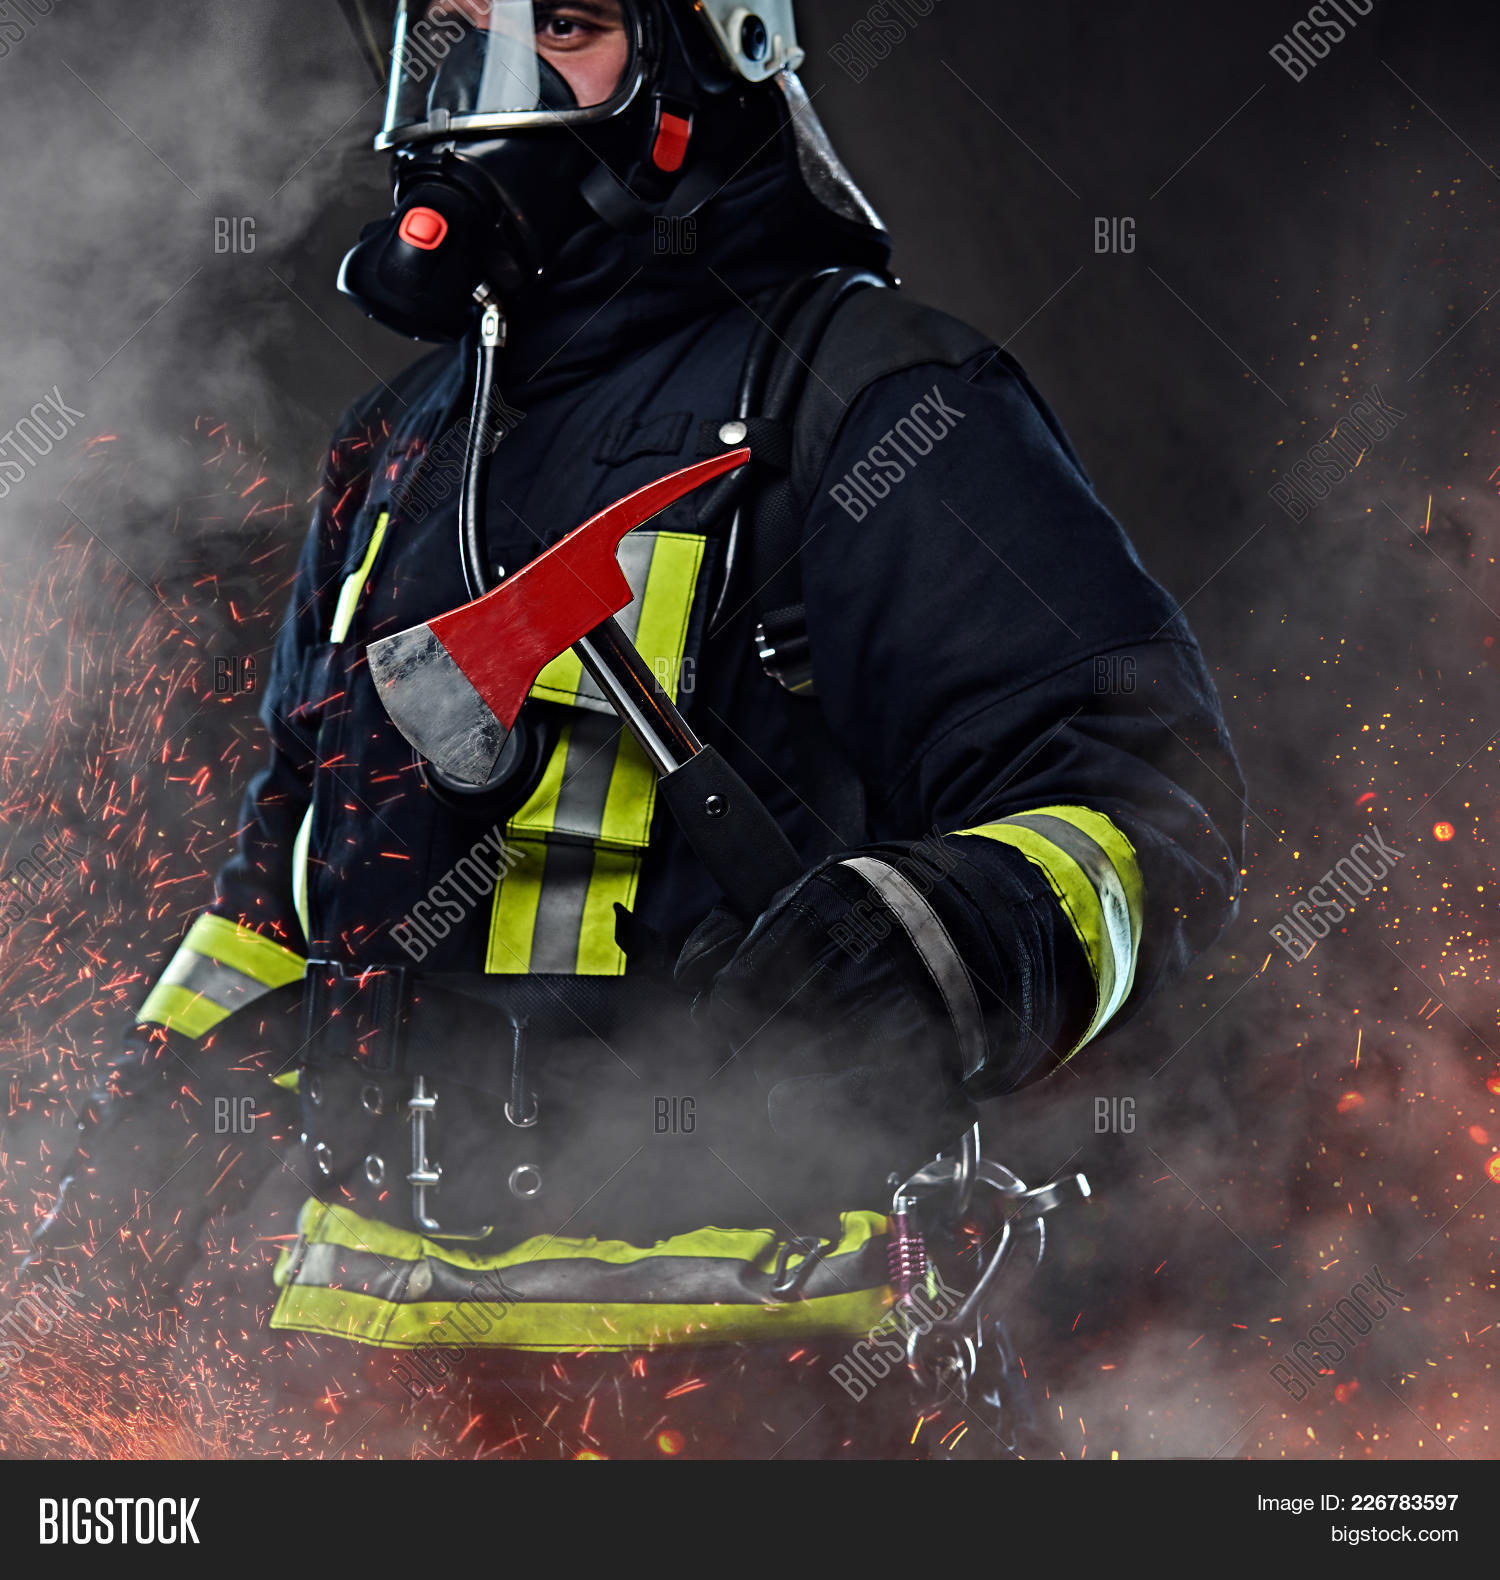 firefighter powerpoint templates - Monza berglauf-verband com